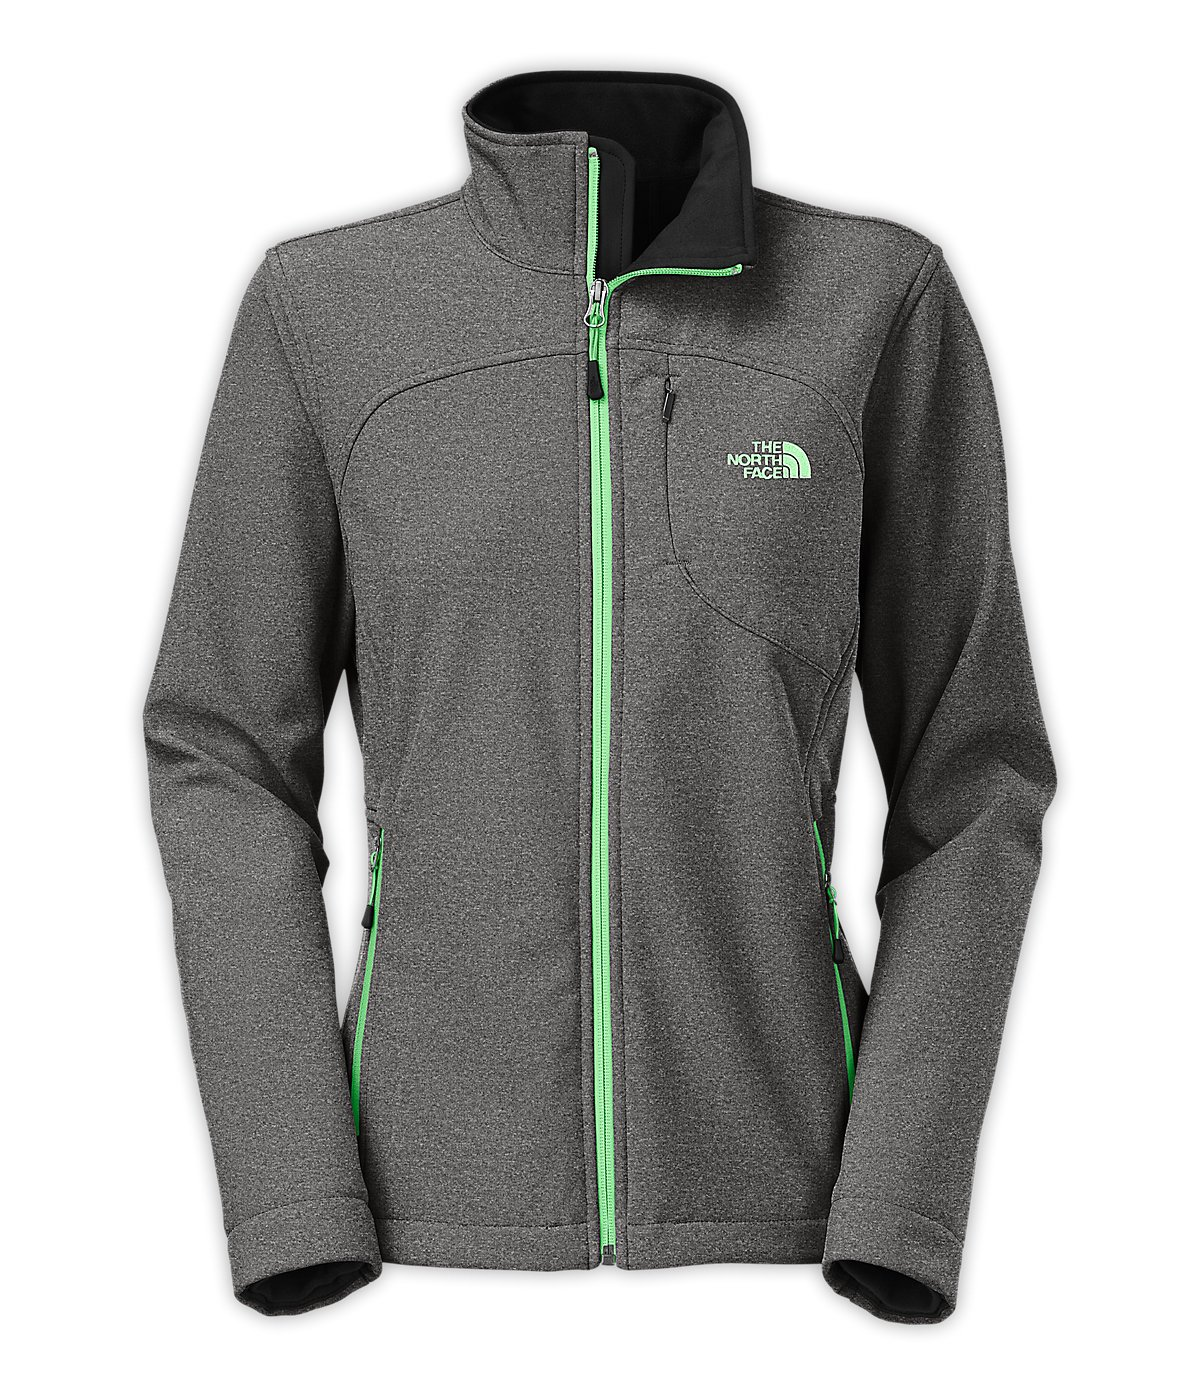 The North Face Women's Apex Bionic Jacket TNF Black Heather Size Small by The North Face